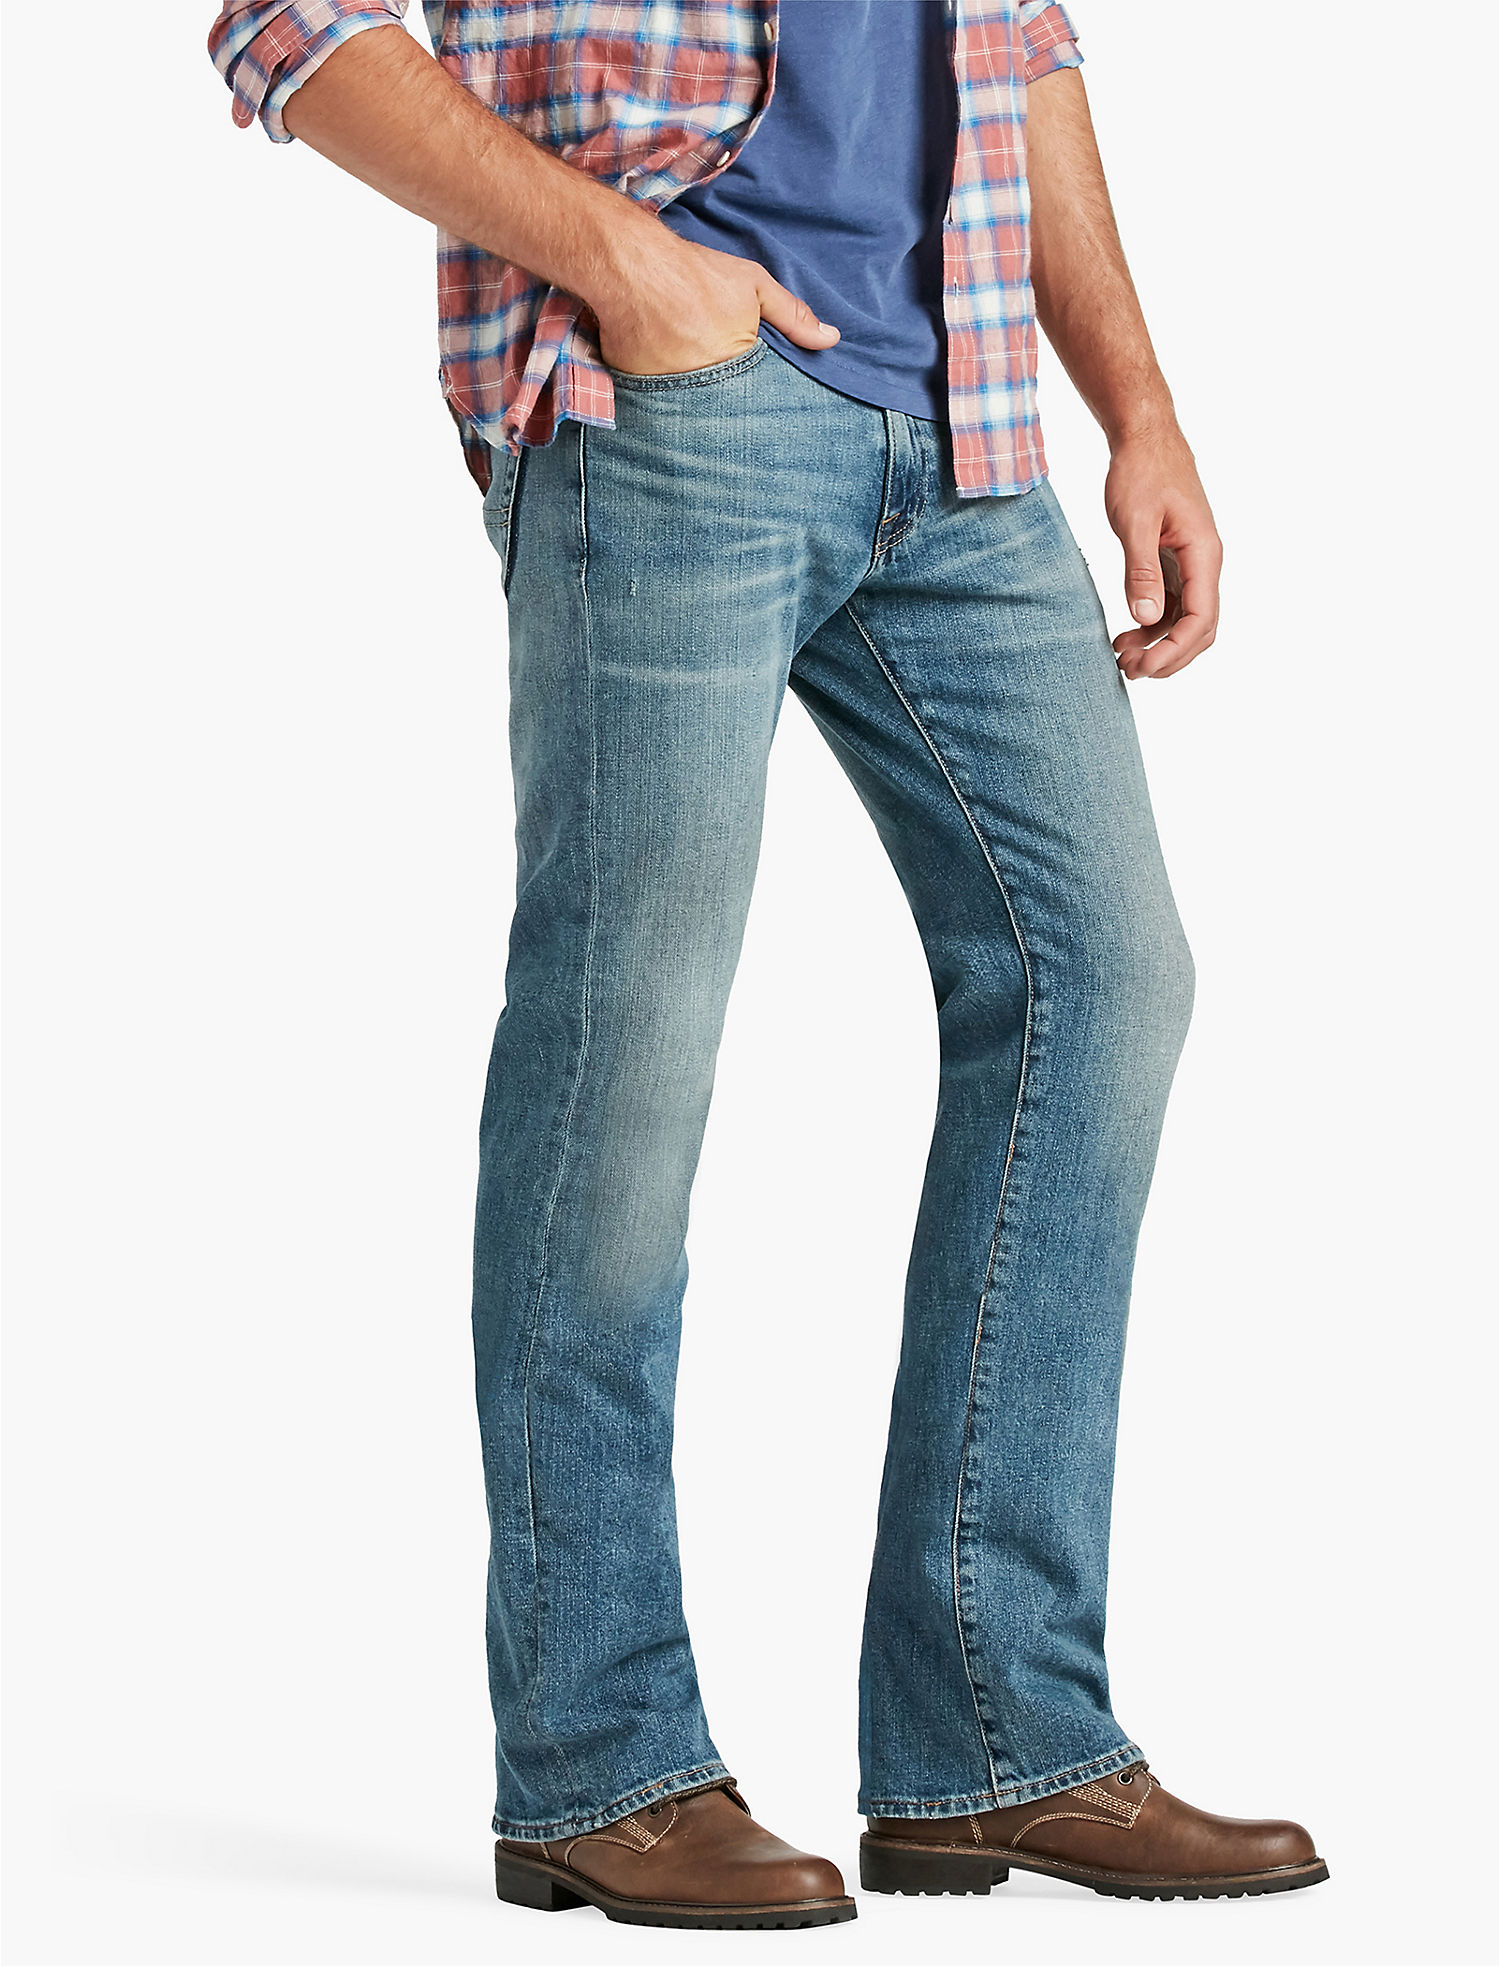 stretch advice comforter most denim raw jeans of wash in the comfortable levis blog amazing types vintage mens different